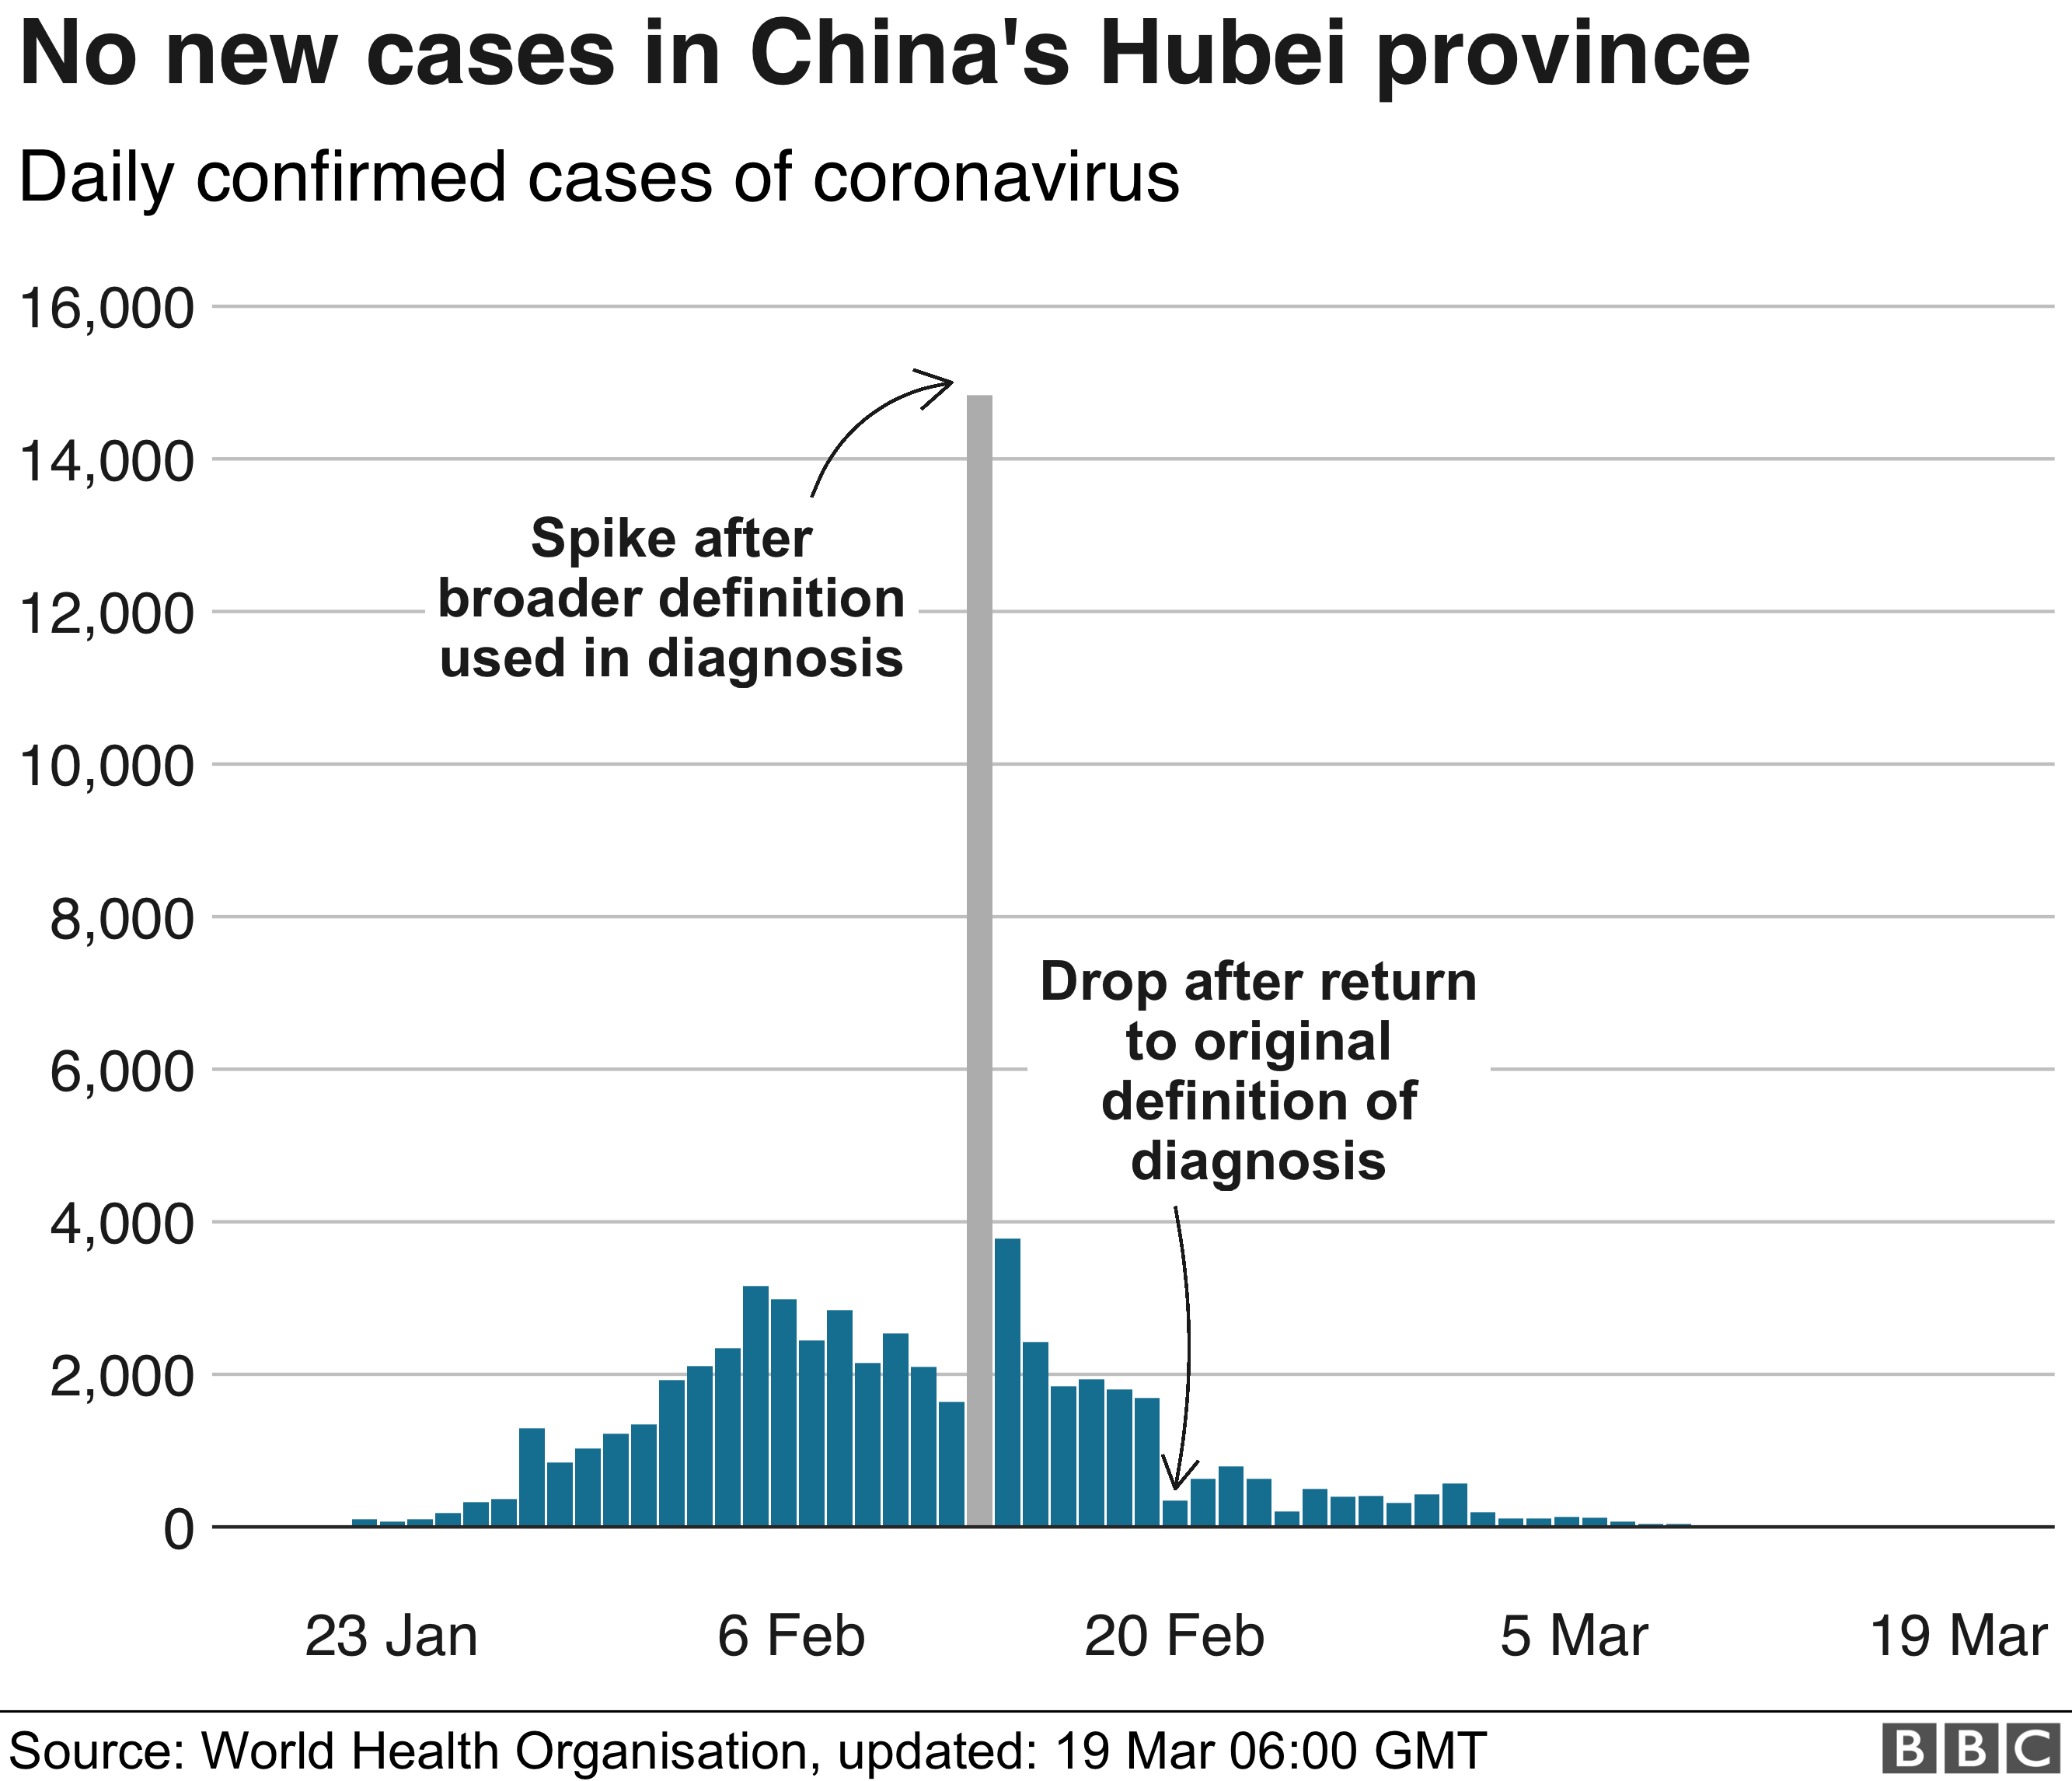 No new cases in Hubei - graphic